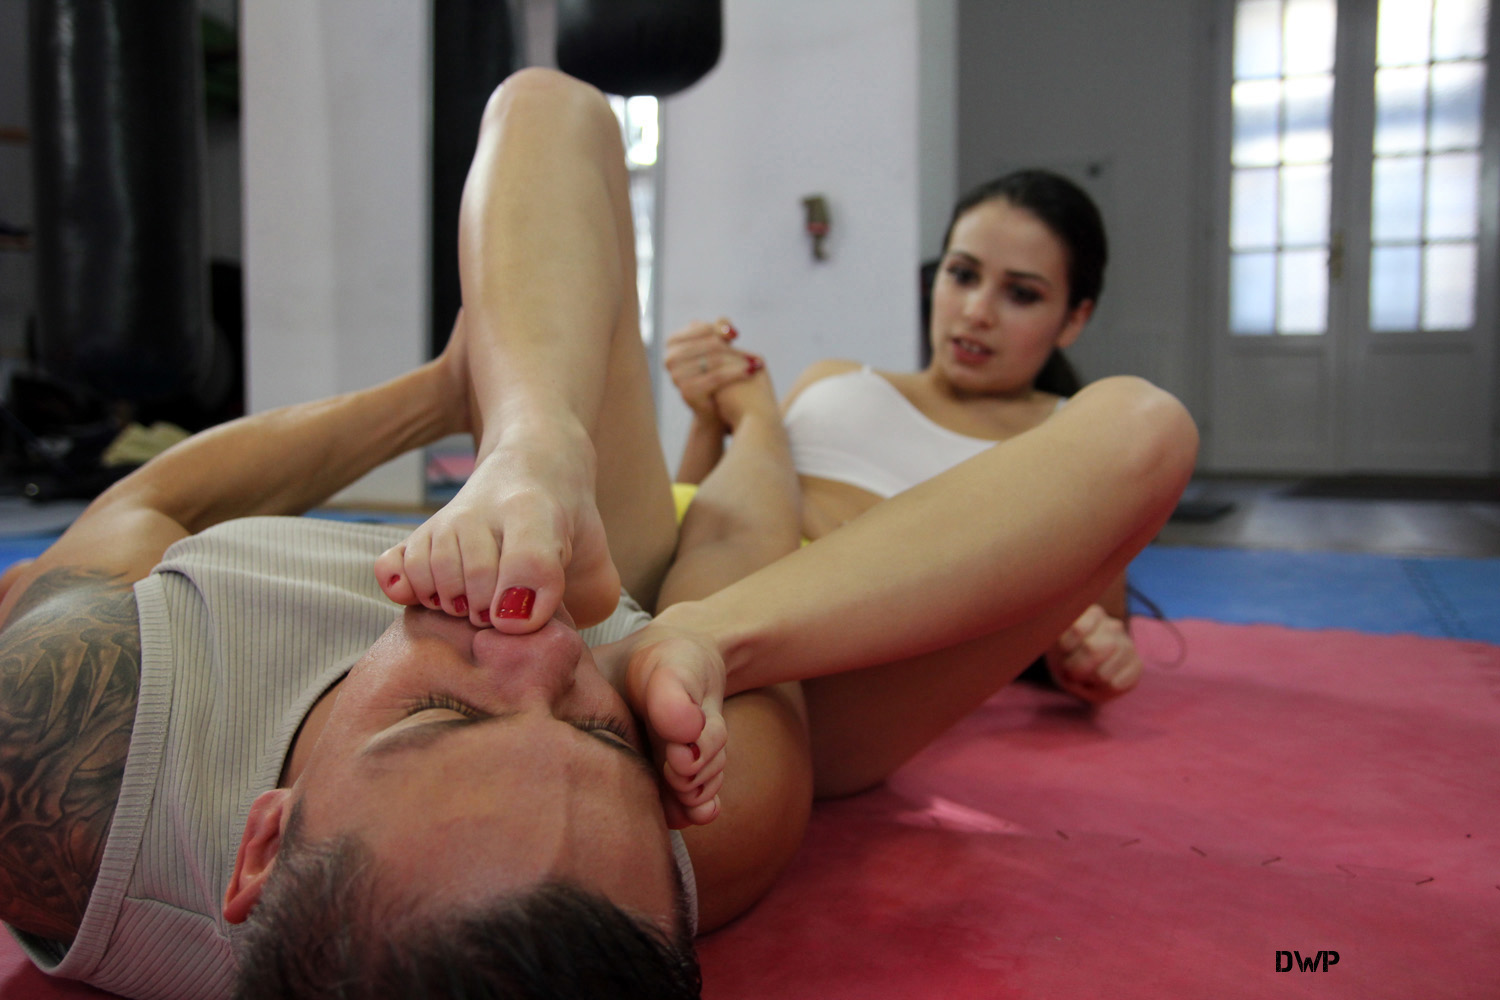 Think, what mixed wrestling foot fetish videos